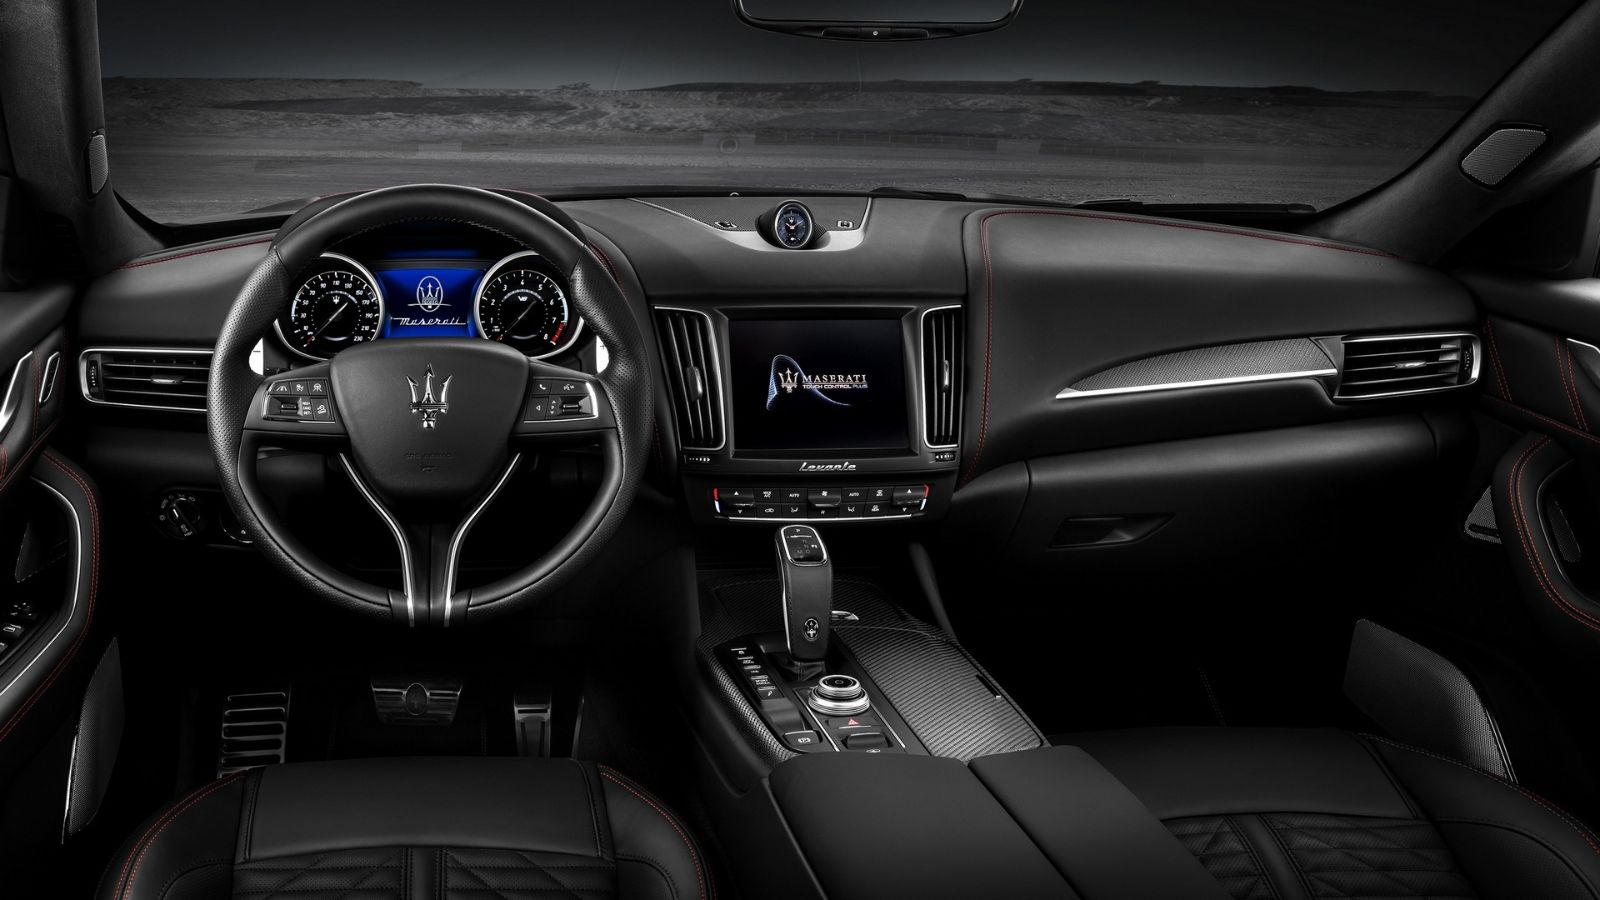 Maserati-Levante-Trofeo-V8-Dashboard-Carbon-trim